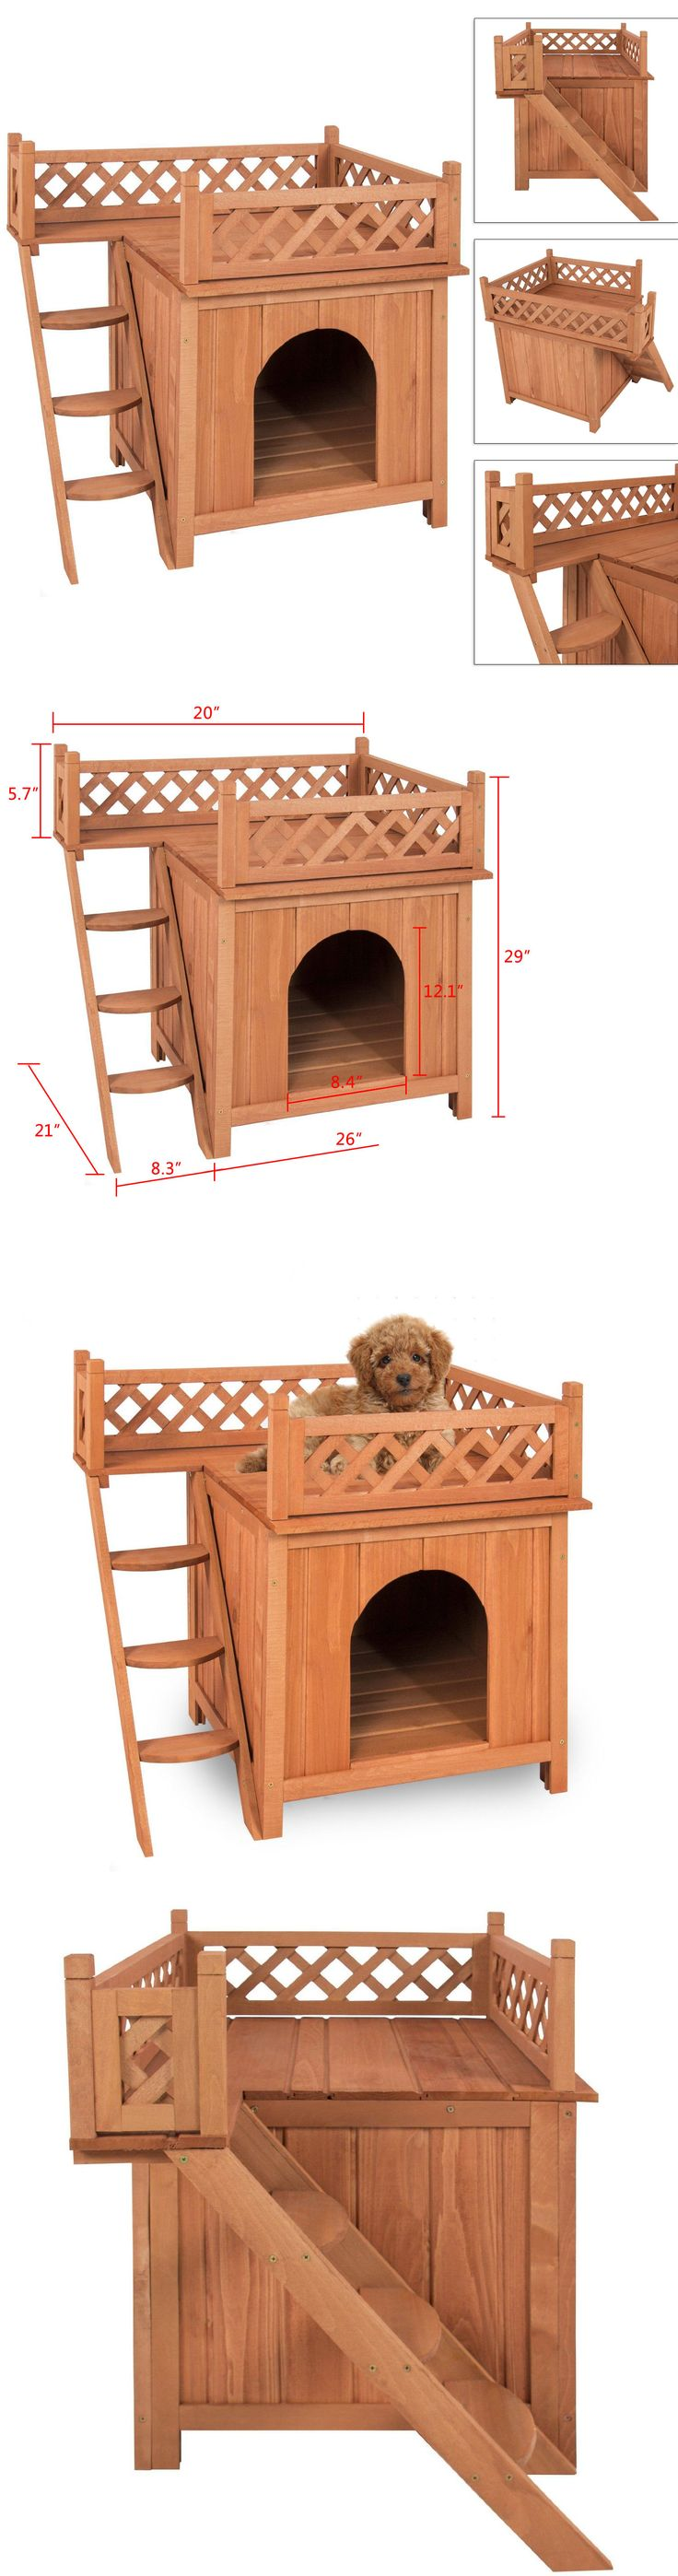 Dog Houses 108884: Pet Dog Wood House Indoor Puppy Room Outdoor Roof Balcony Bed Shelter BUY IT NOW ONLY: $49.98